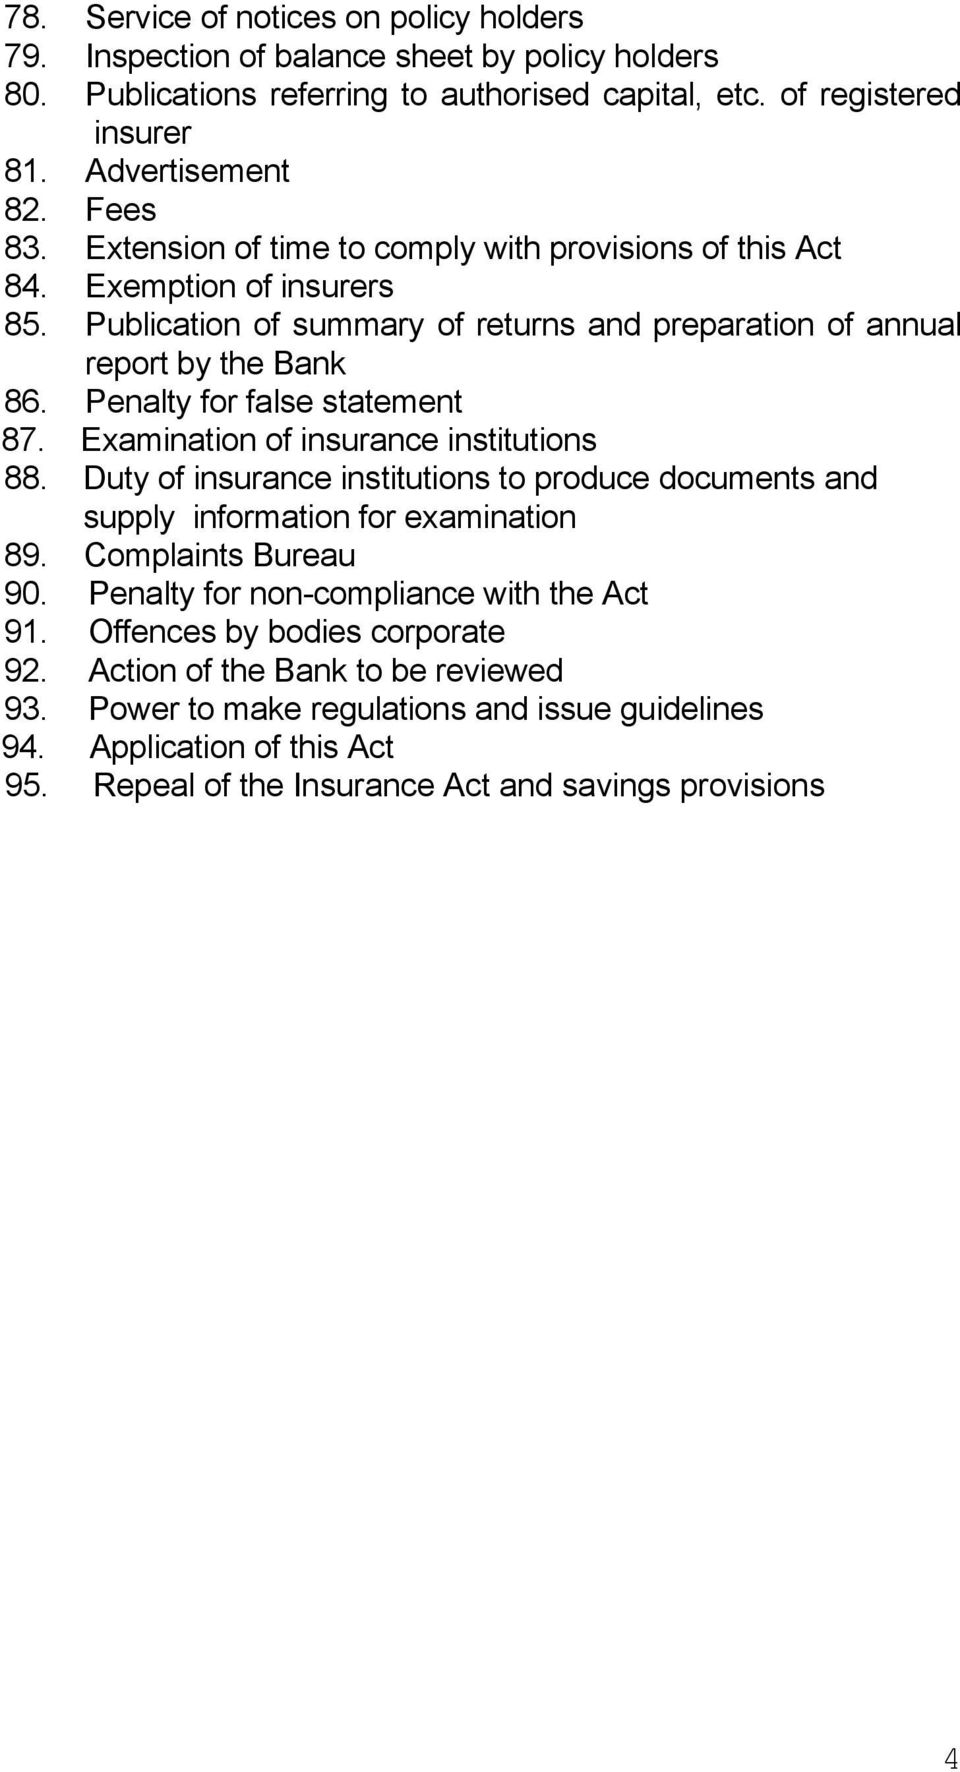 Examination of insurance institutions 88. Duty of insurance institutions to produce documents and supply information for examination 89. Complaints Bureau 90.